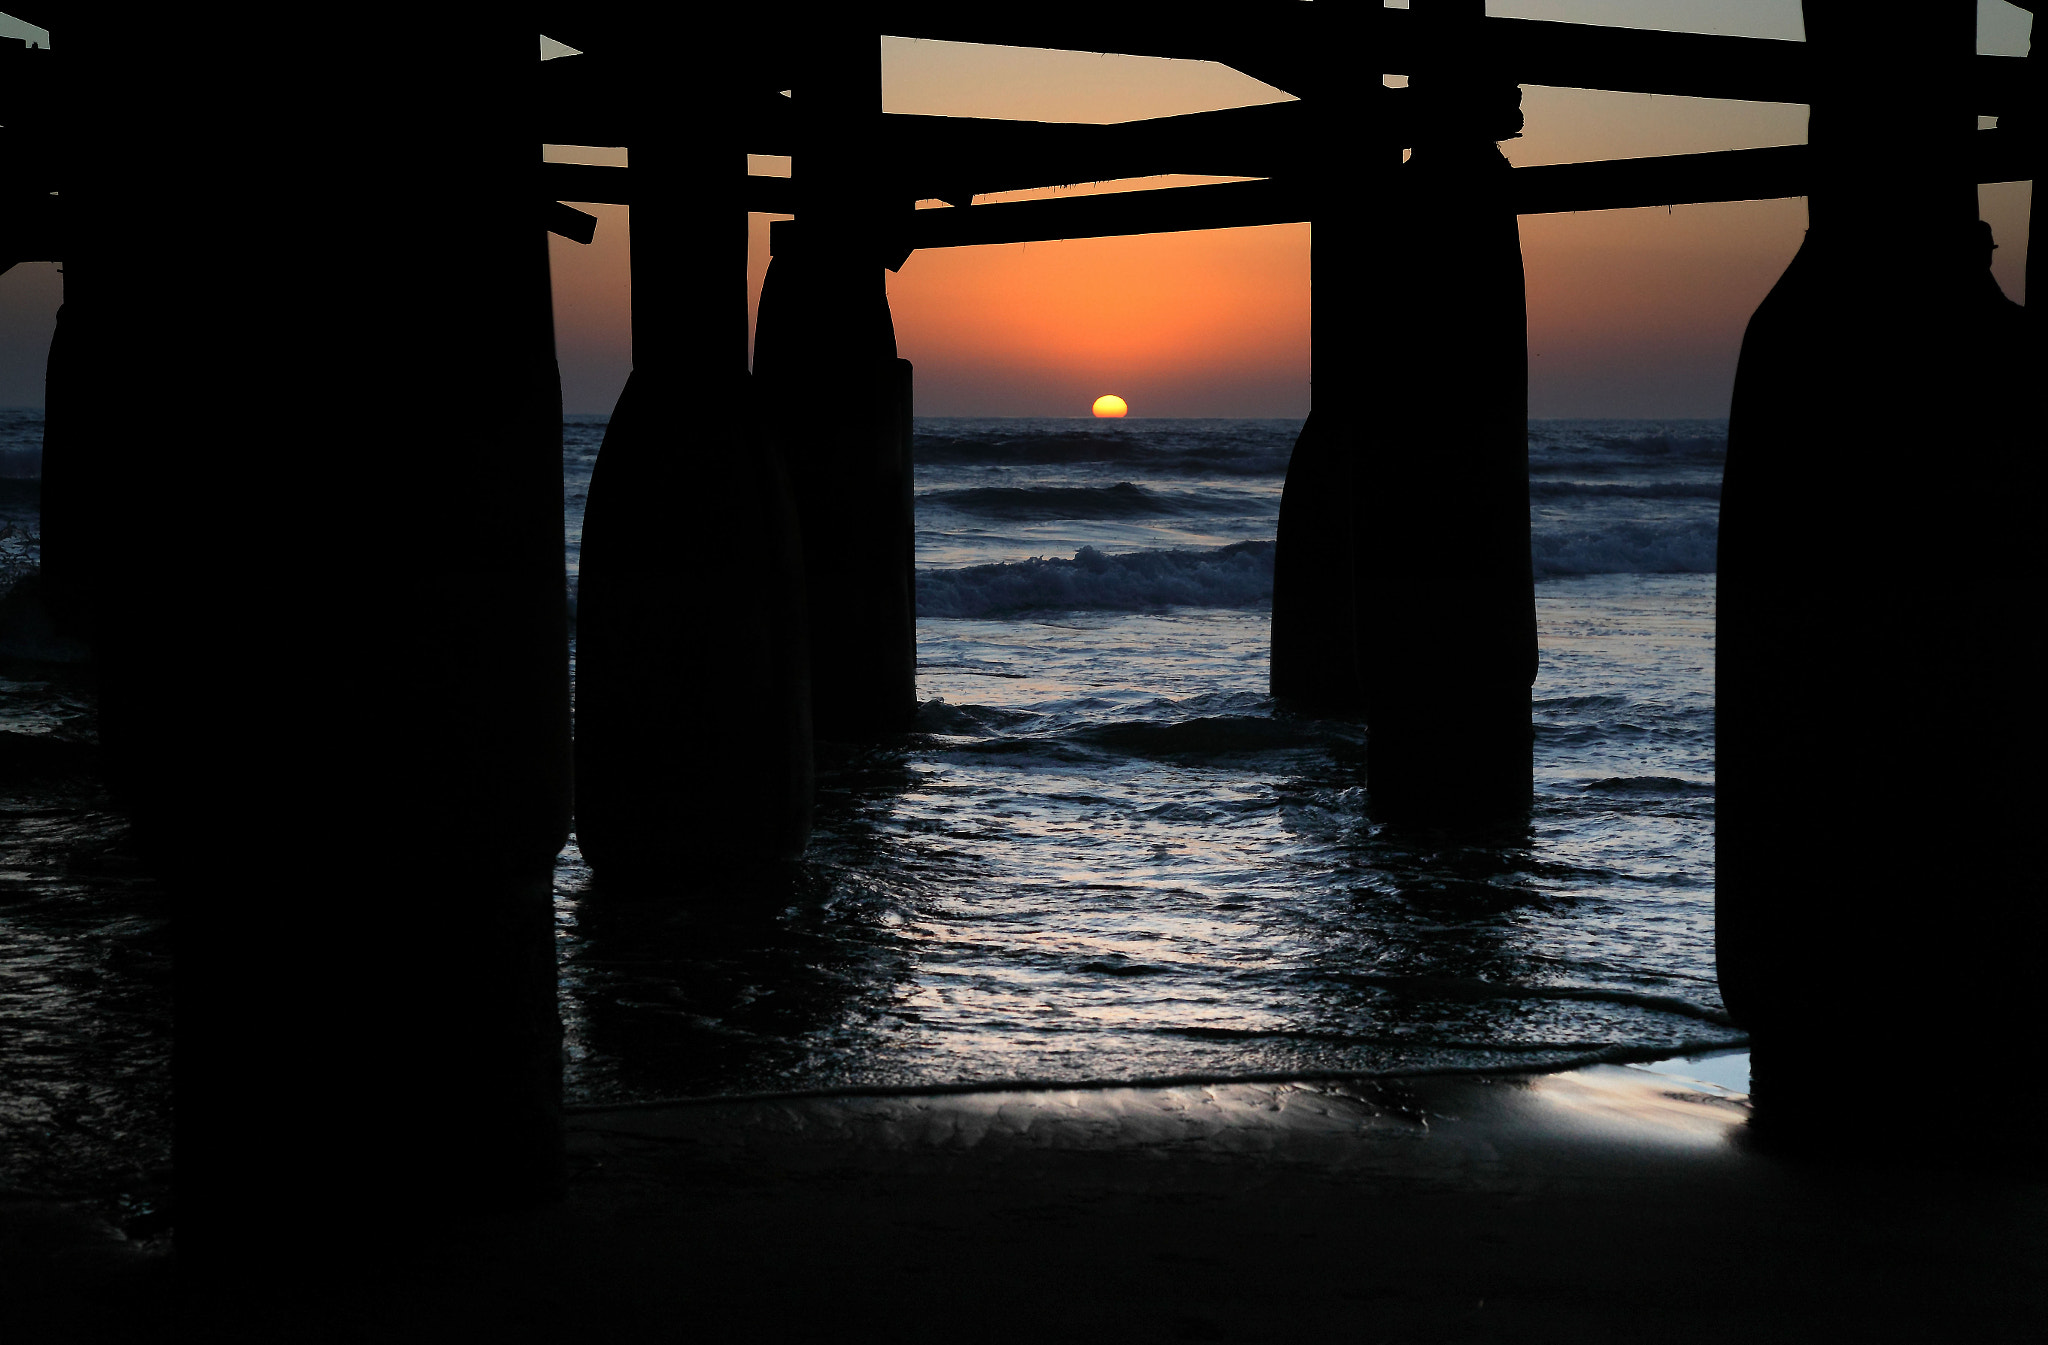 Photograph Through the Pier by Alissa Haygood on 500px